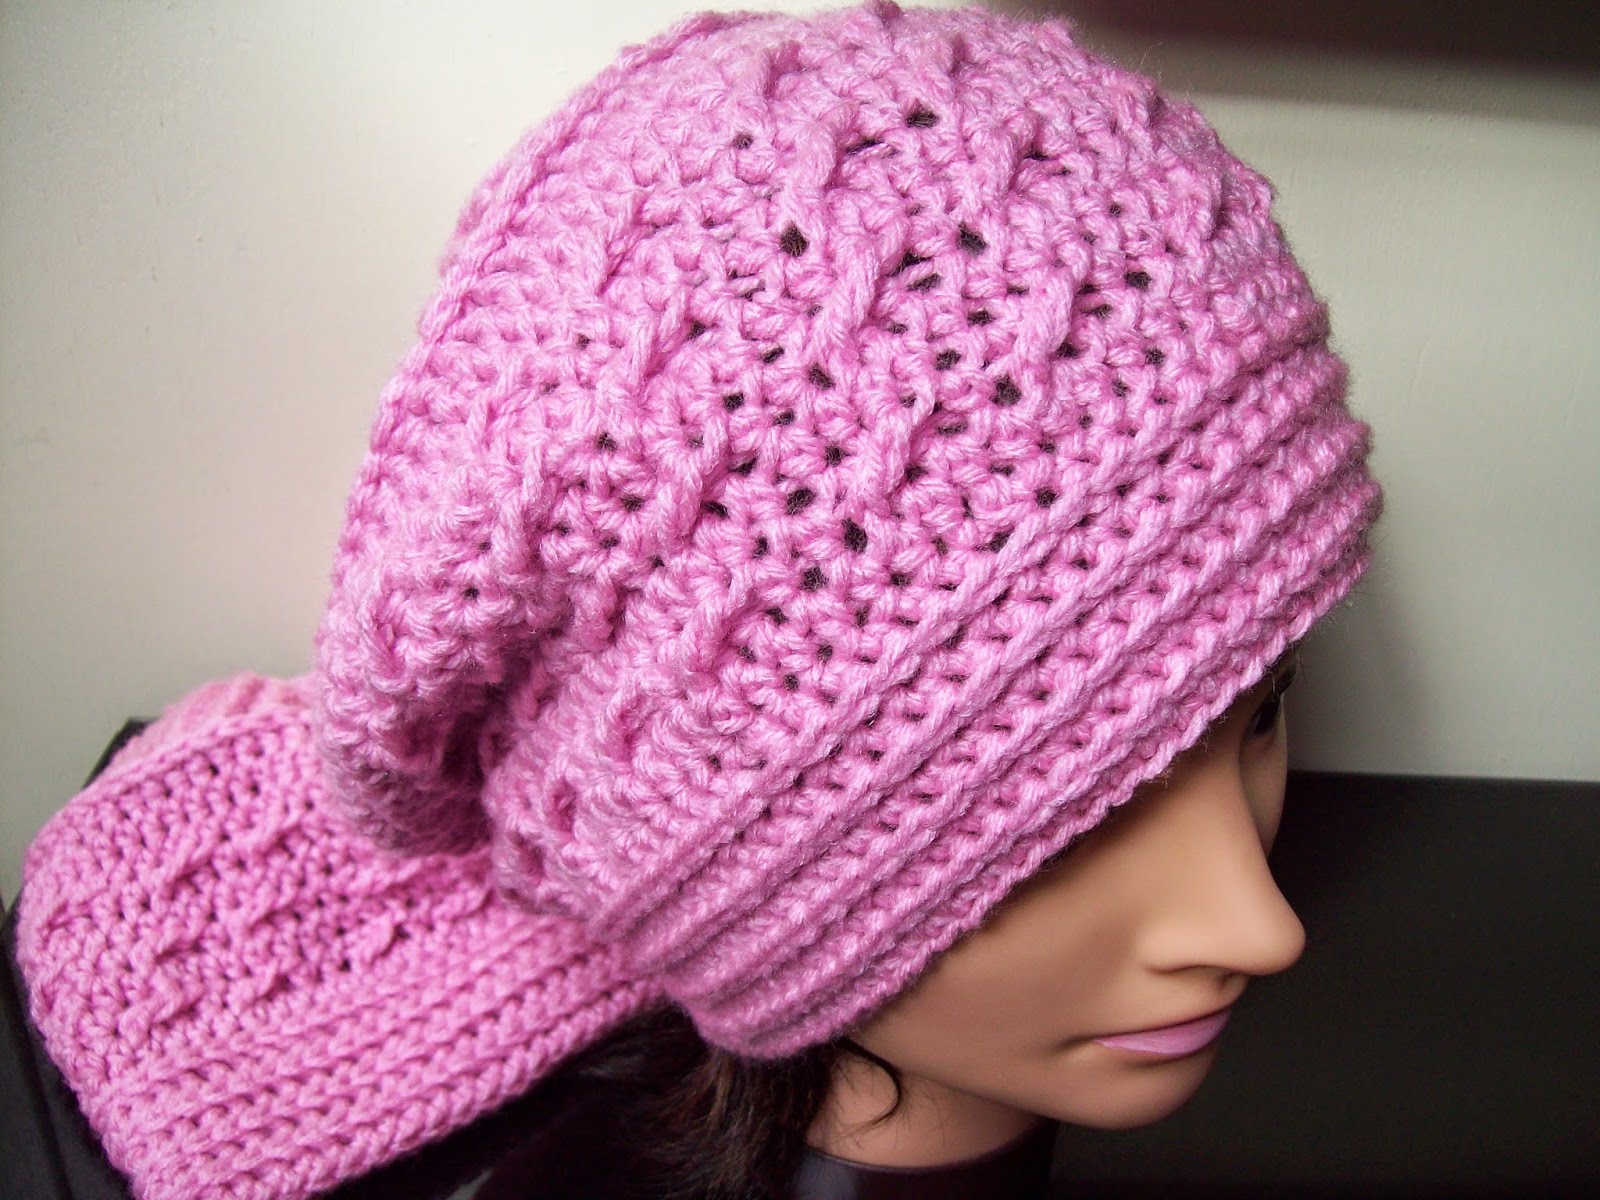 Small Pink Crochet Hat Pattern